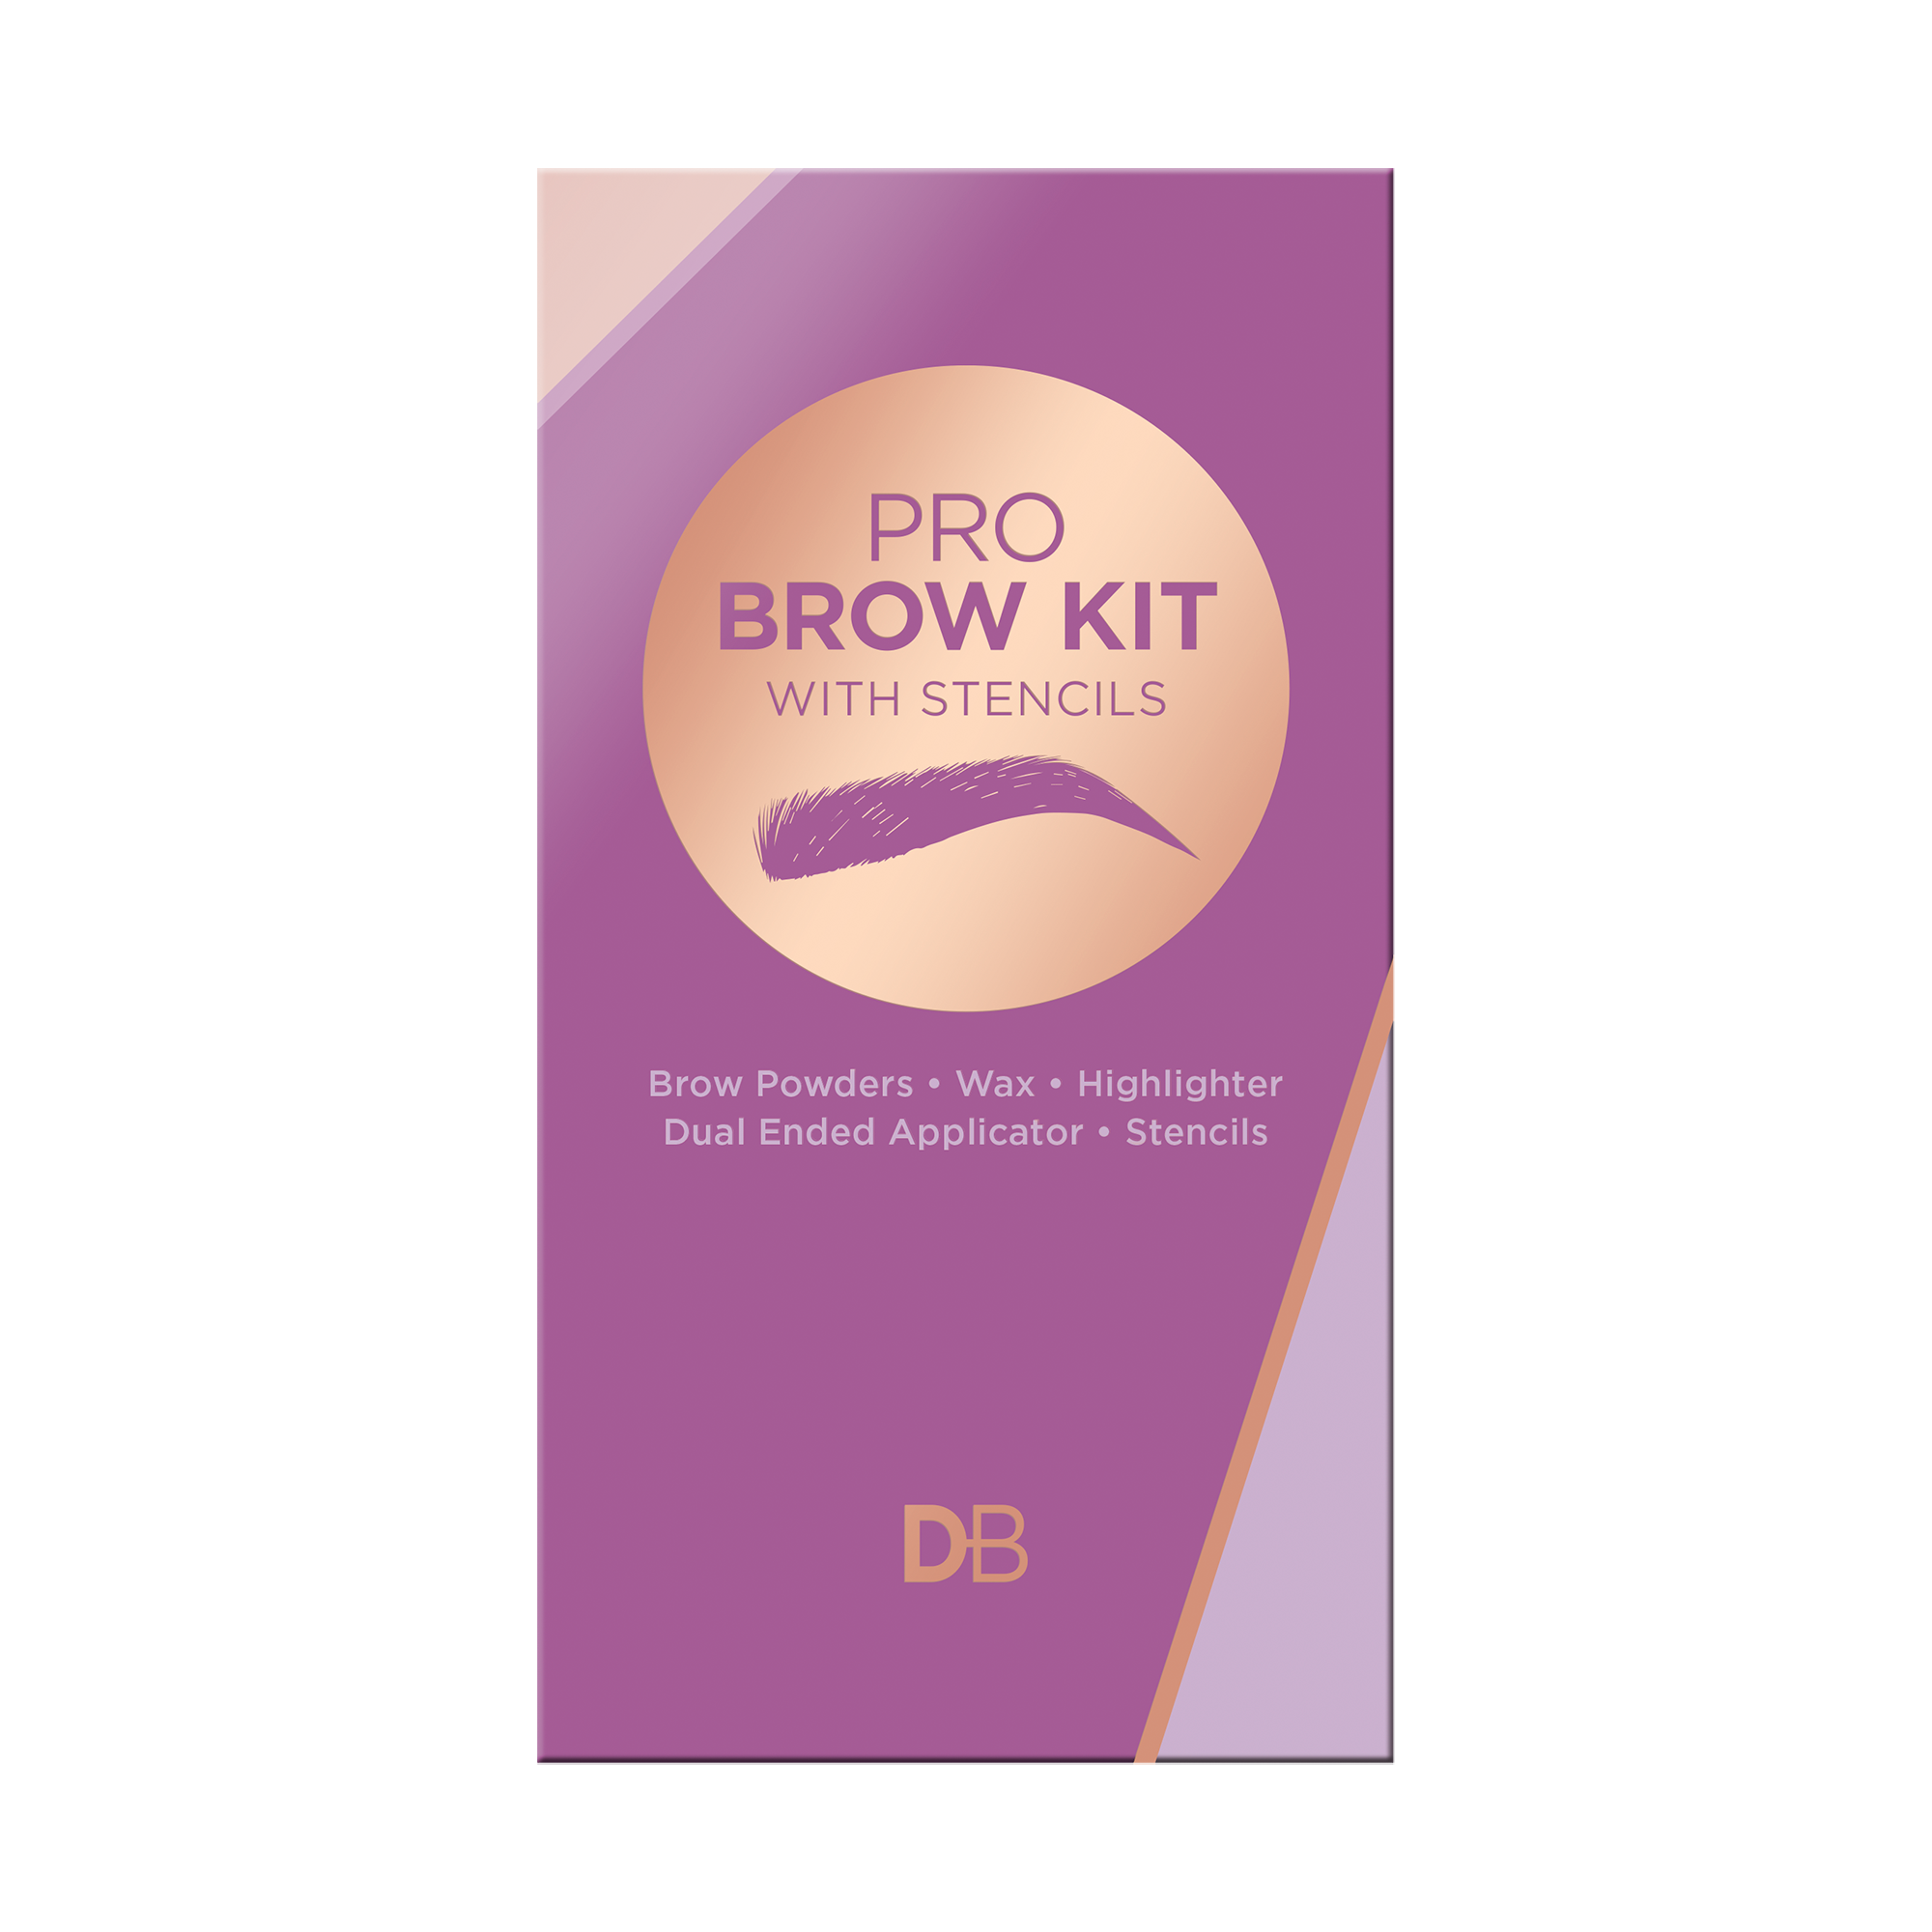 Pro Brow Kit with Stencils